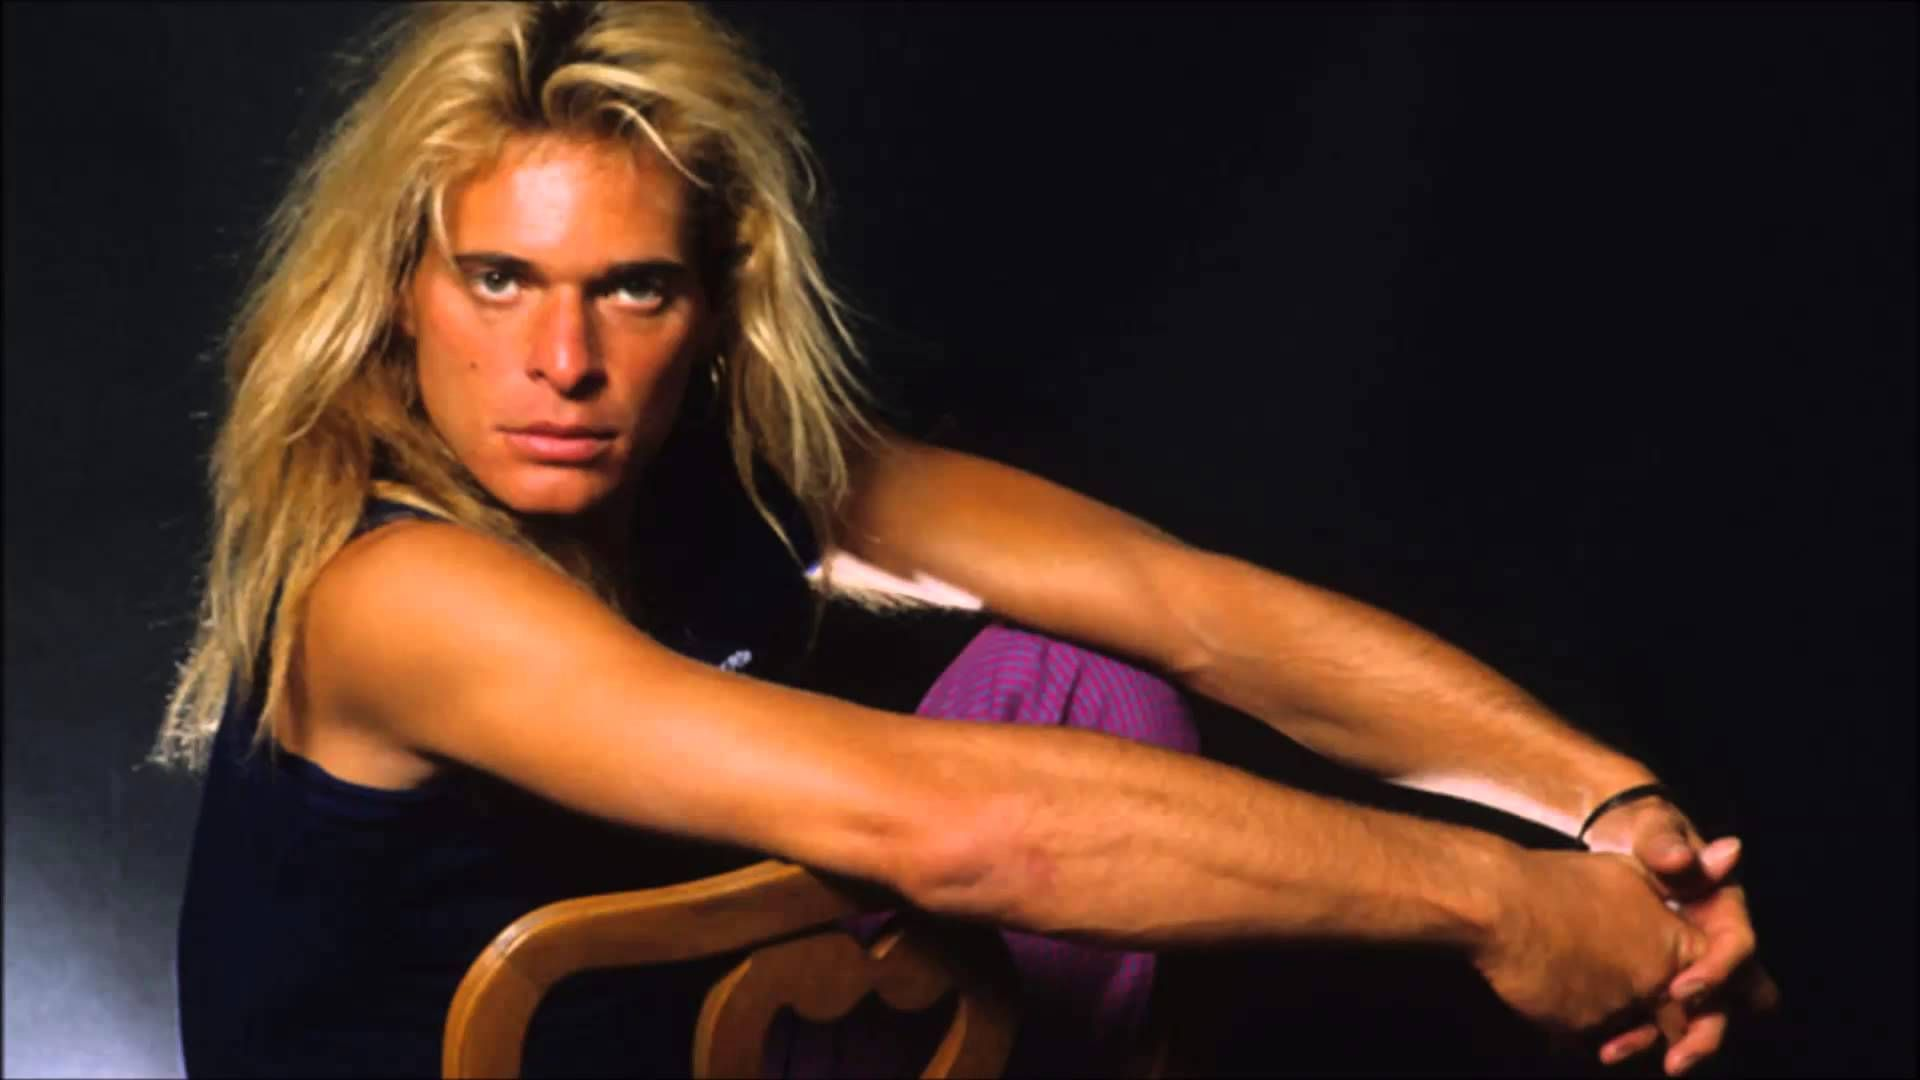 David Lee Roth Just A Gigolo Lyrics David Lee Roth Van Halen Lead Singer